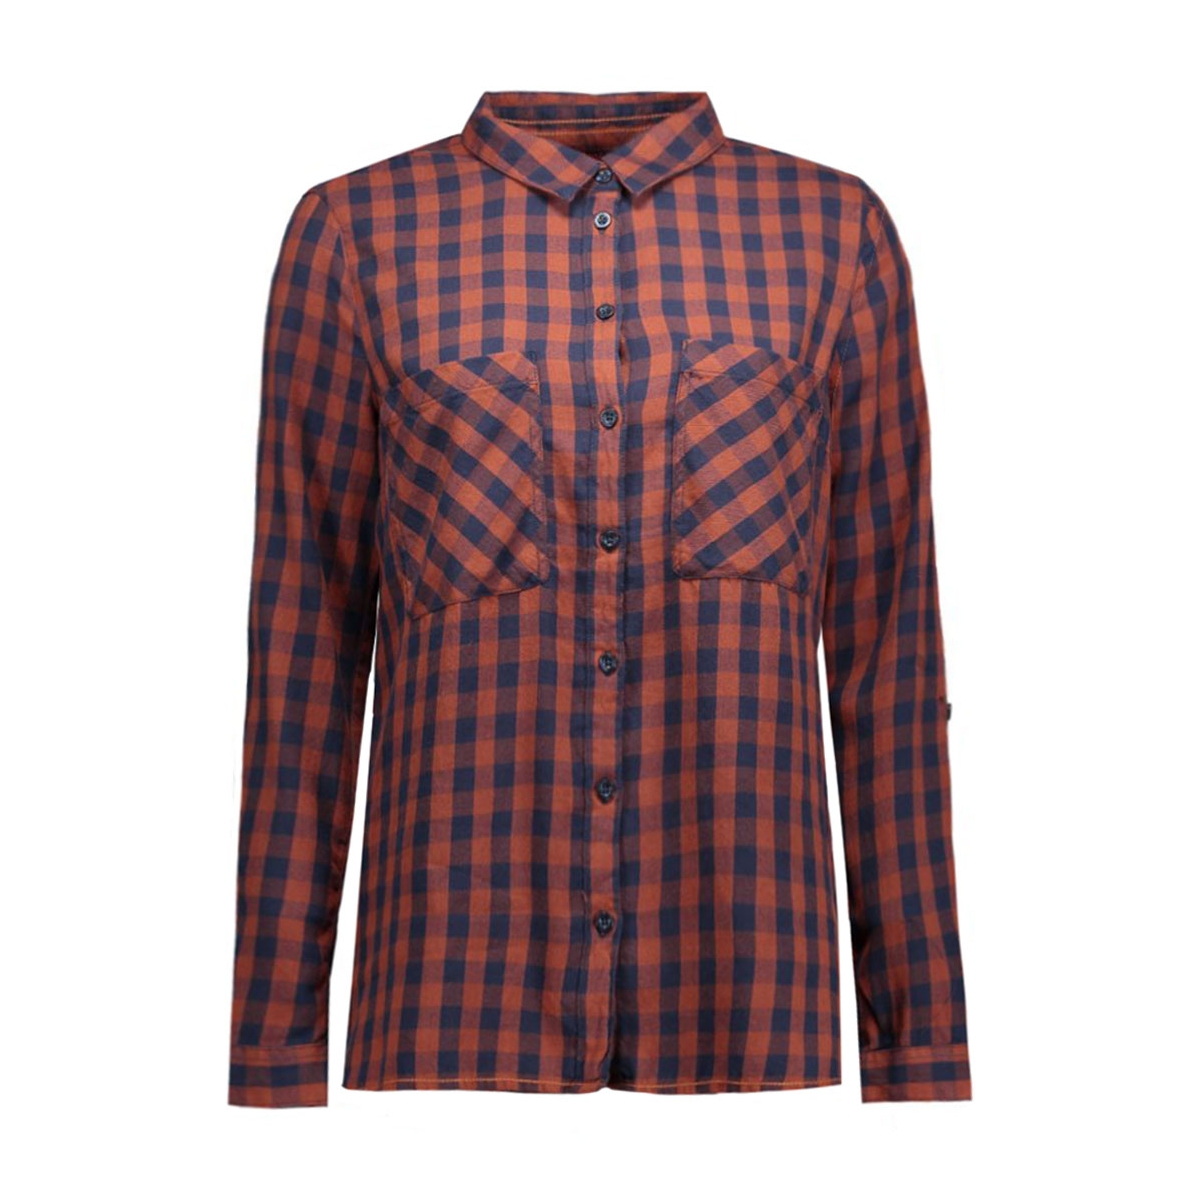 2032160.09.71 tom tailor blouse 3580